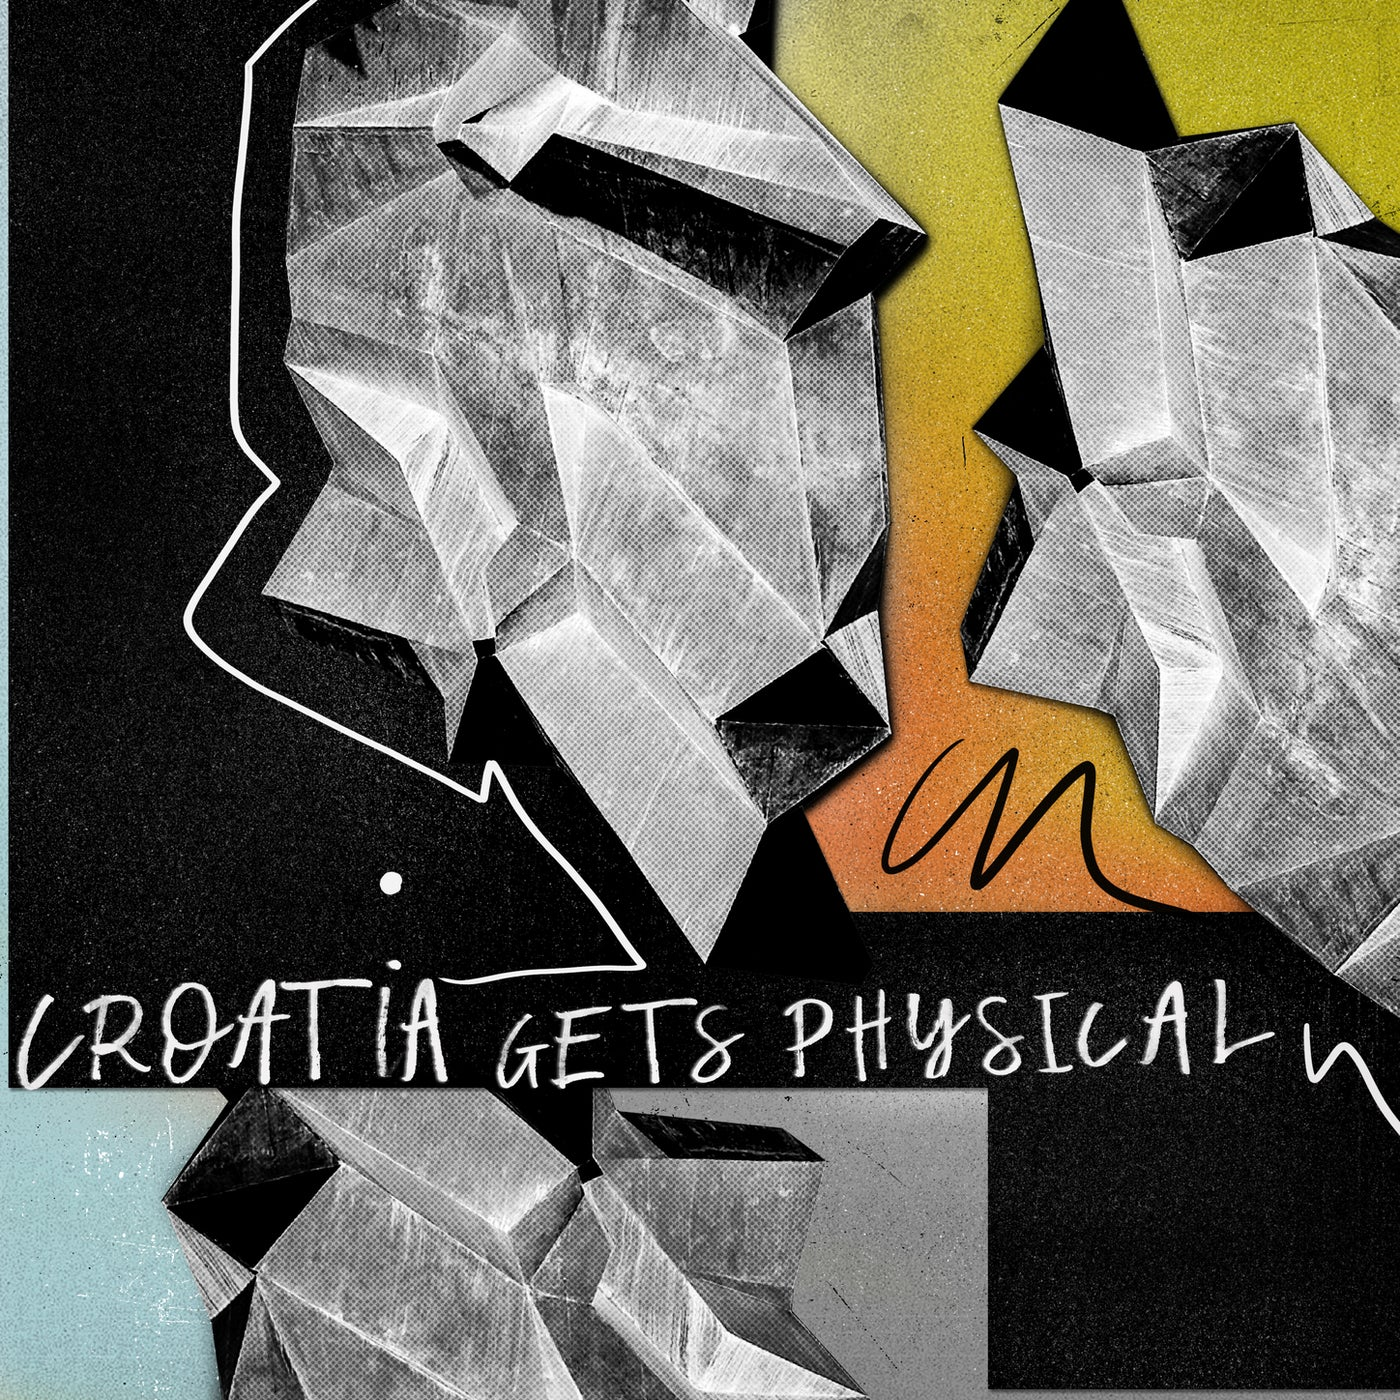 Download Croatia Get Physical - EP4 on Electrobuzz